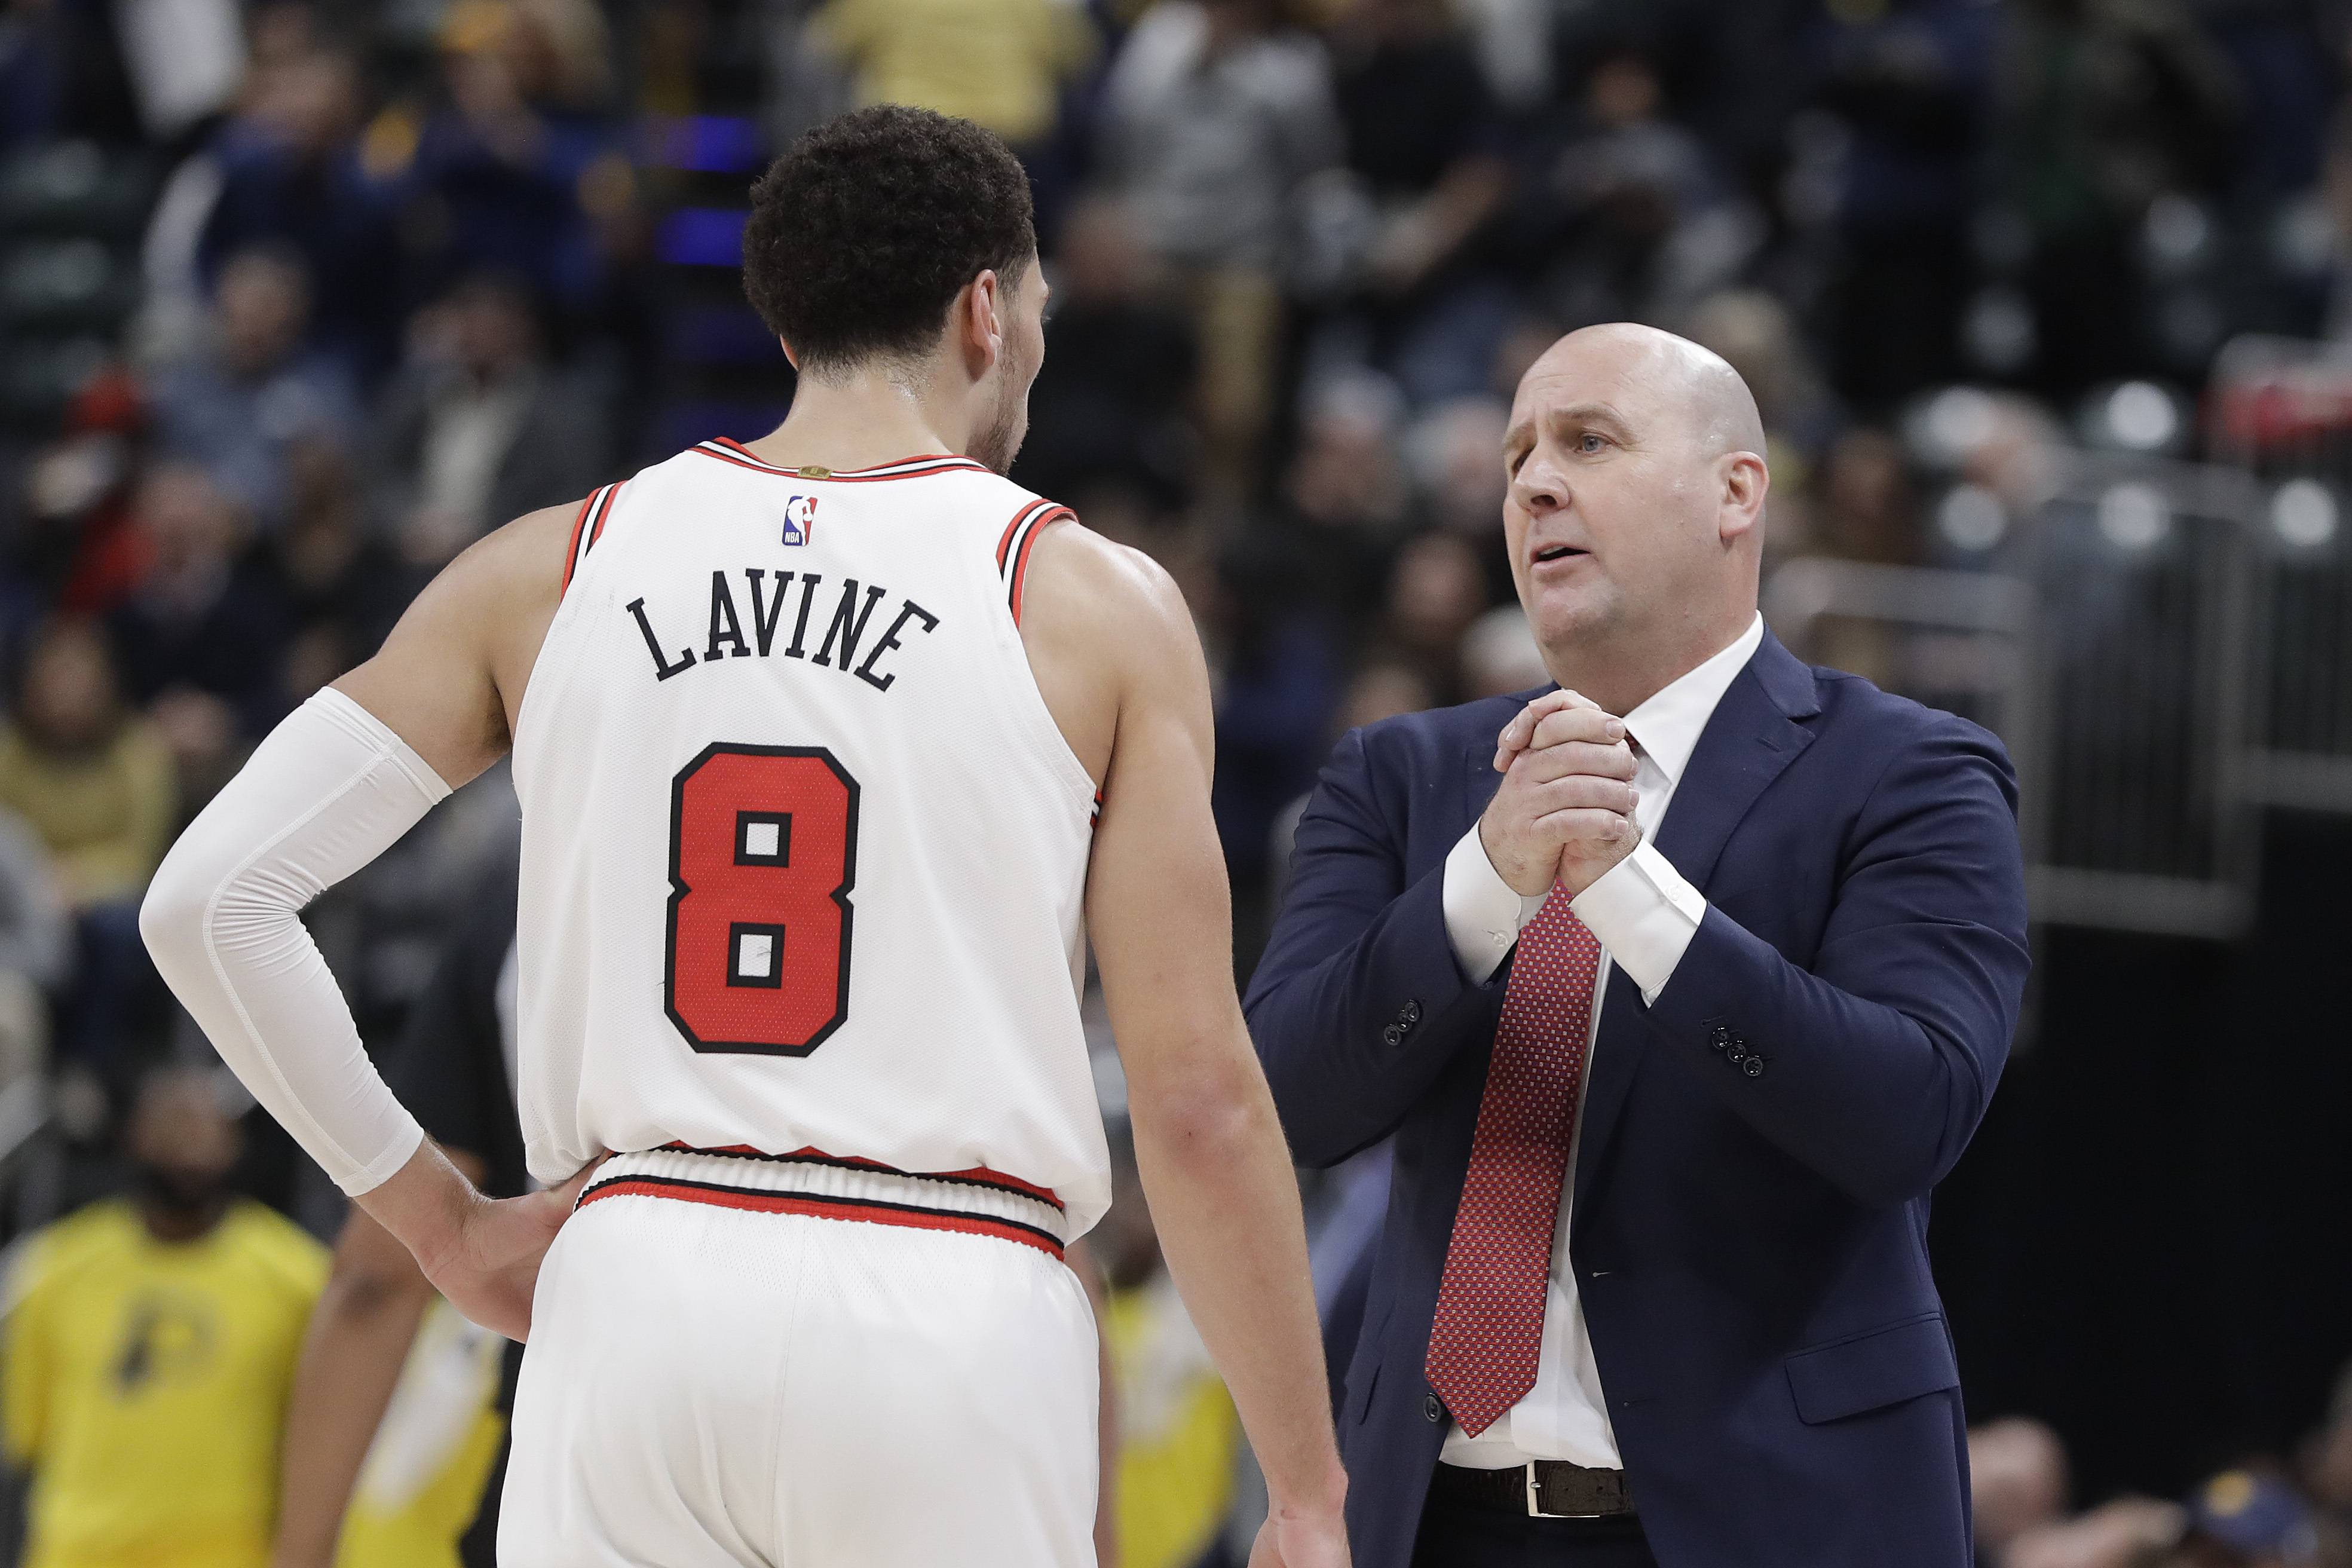 Chicago Bulls head coach Jim Boylen talks with Zach LaVine during the second half of an NBA basketball game against the Indiana Pacers, Tuesday, Dec. 4, 2018, in Indianapolis. Indiana won 96-90.